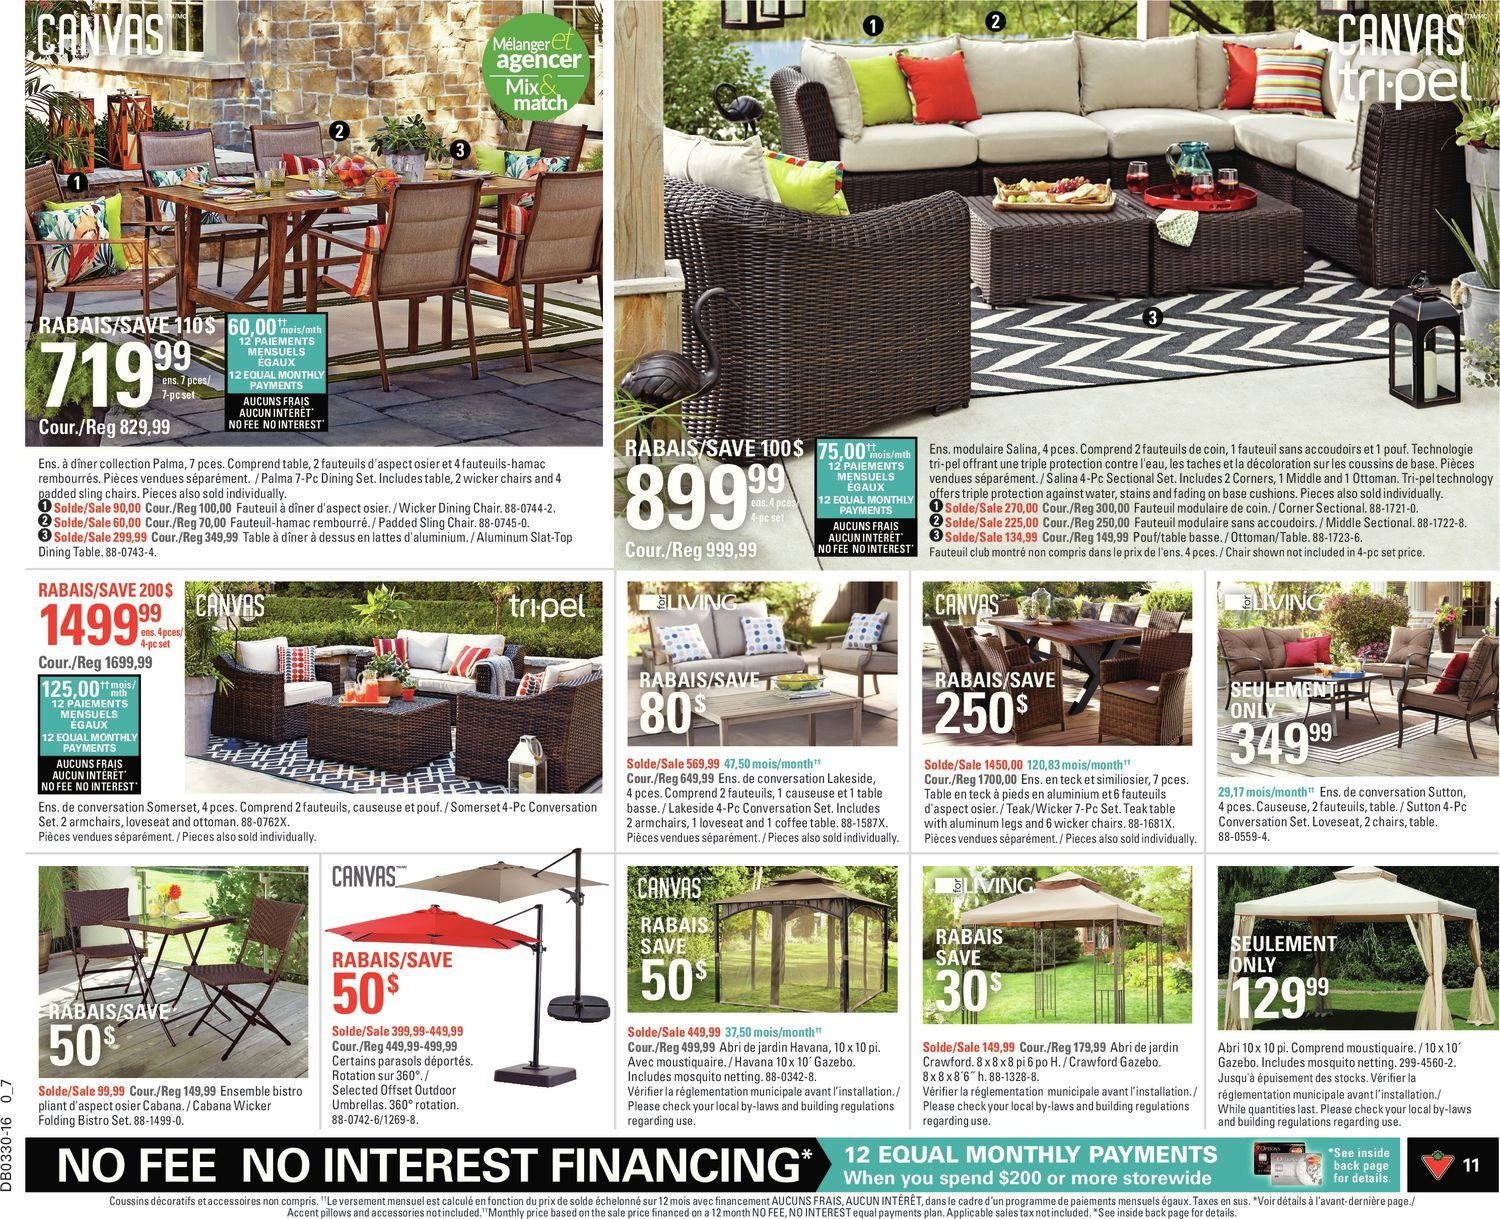 Fauteuils Relax Variance Canadian Tire Weekly Flyer Weekly Soak Up Summer Jul